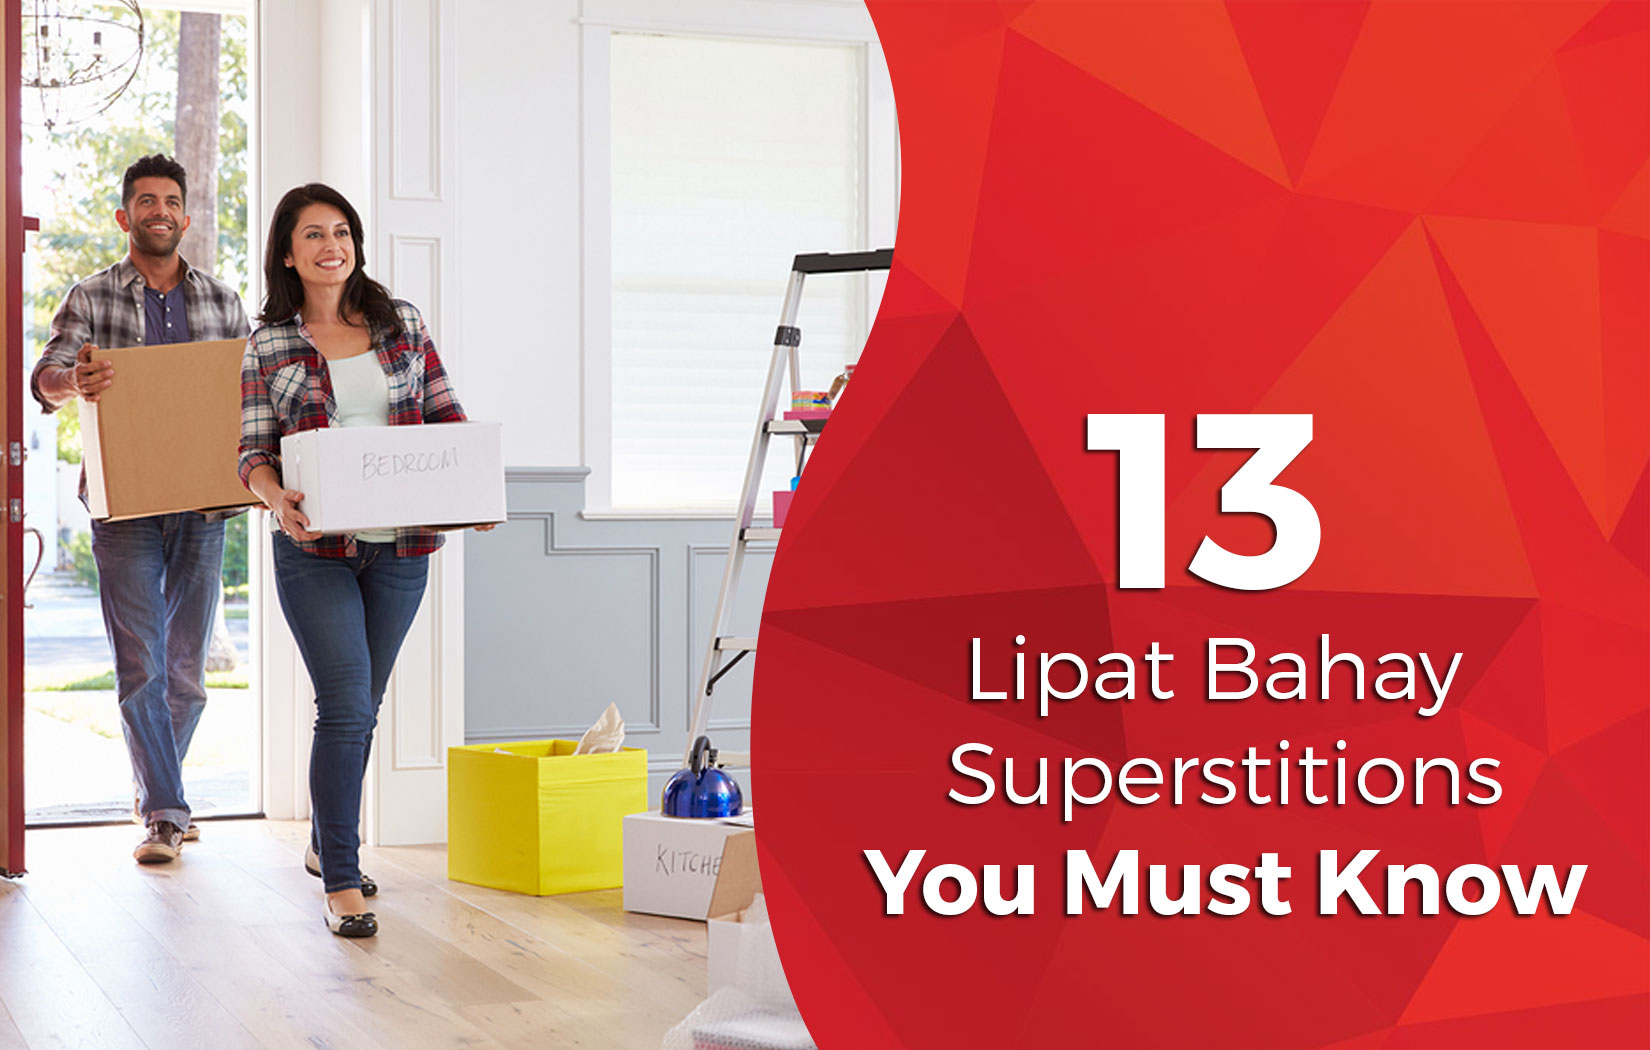 Lipat Bahay Superstitions